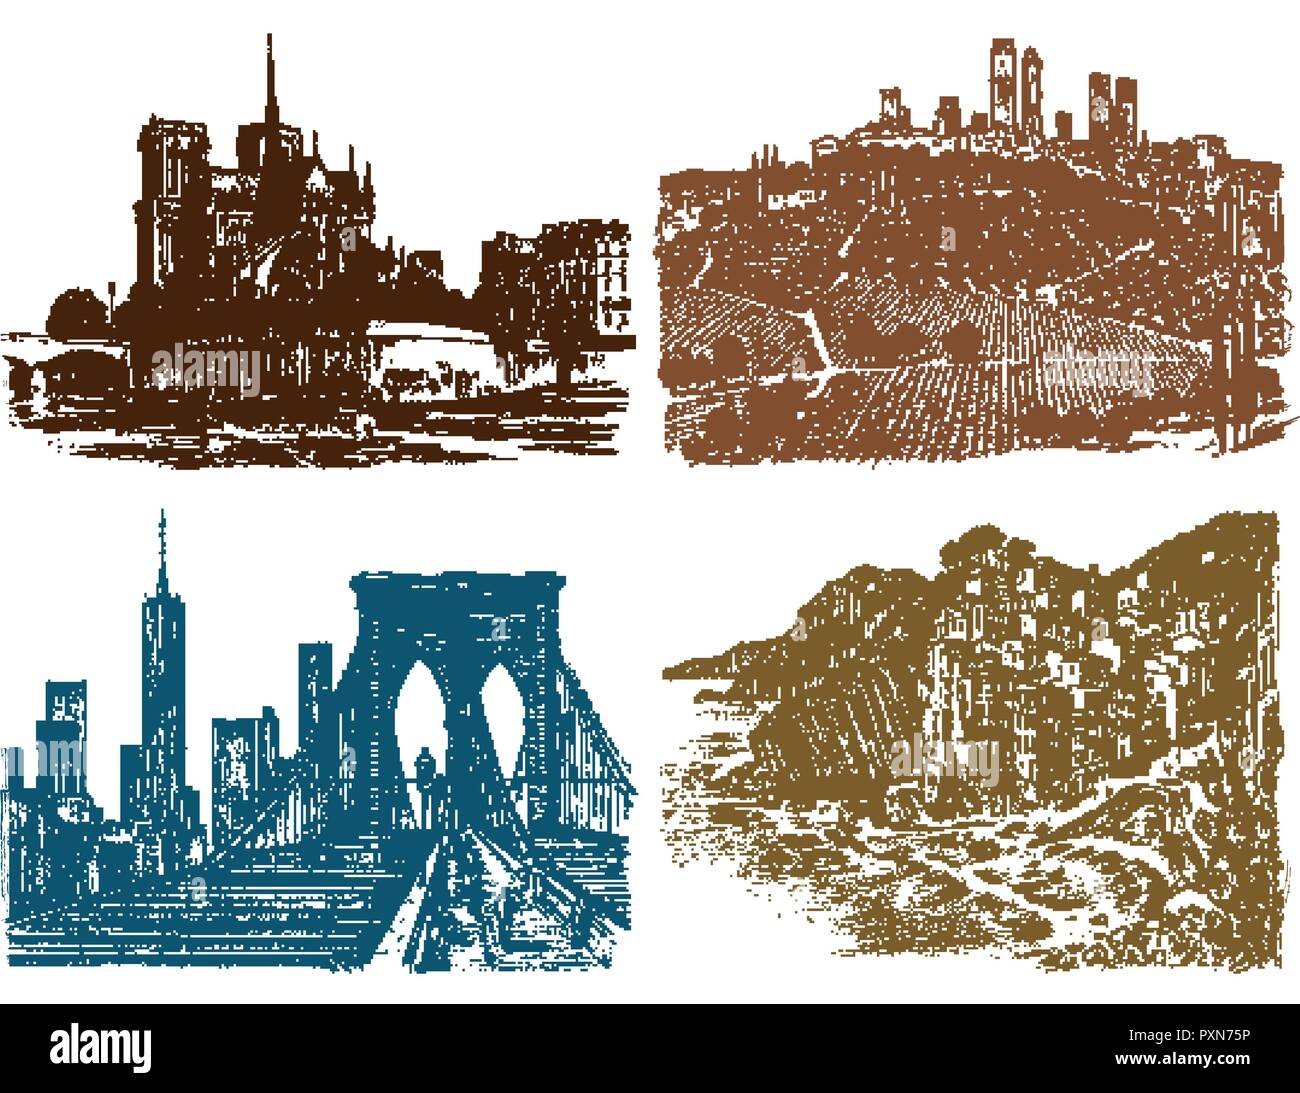 Historical architecture with buildings and Mountain peaks. Engraved hand drawn in old sketch and monochrome vintage style. Travel postcard. - Stock Image